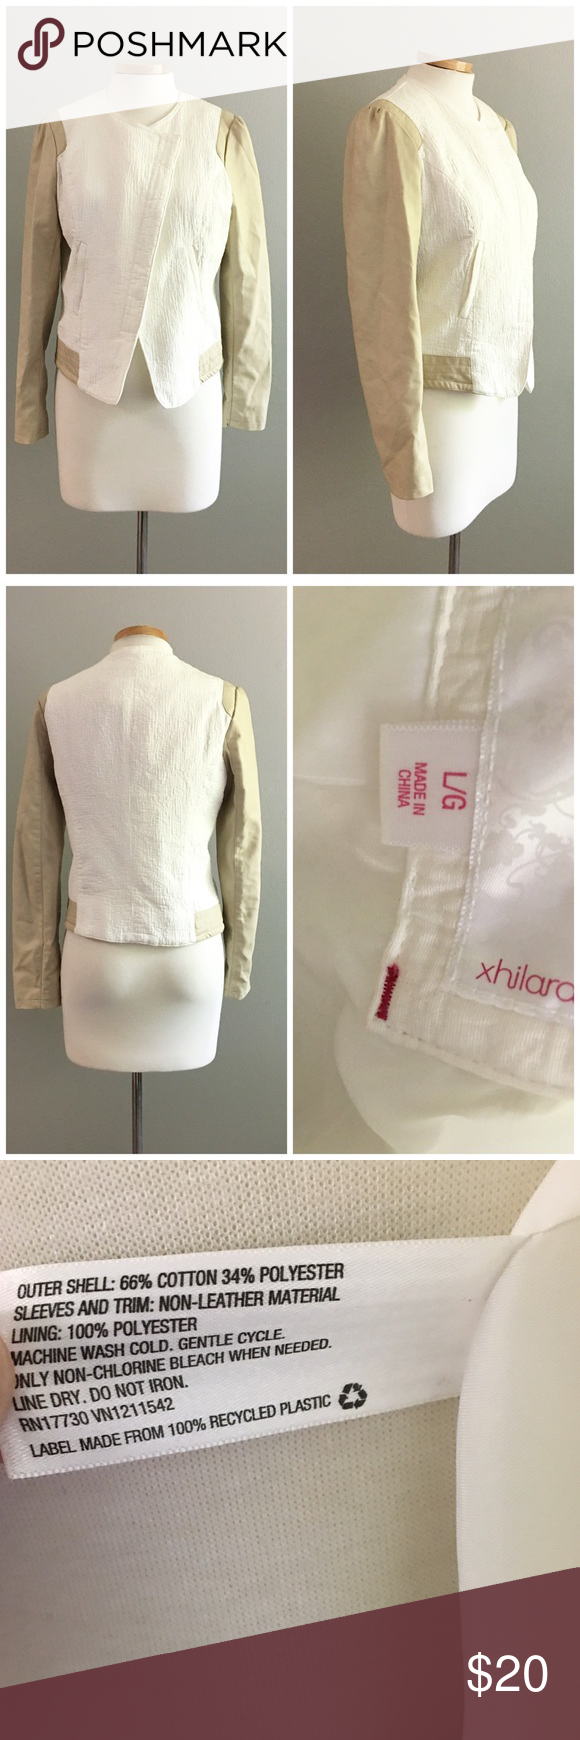 "NWOT Cream White Faux Leather Moto Button Jacket NWOT Cream White Faux Leather Moto Button Jacket. Size large. Thank you for looking at my listing. Please feel free to comment with any questions (no trades/modeling).  •Fabric: Cotton Blend  •Bust: 42""  •Condition:  NWOT!   25% off all Bundles or 3+ items! Reasonable offers welcome. Visit me on INSTA @reupfashions. KA Xhilaration Jackets & Coats"